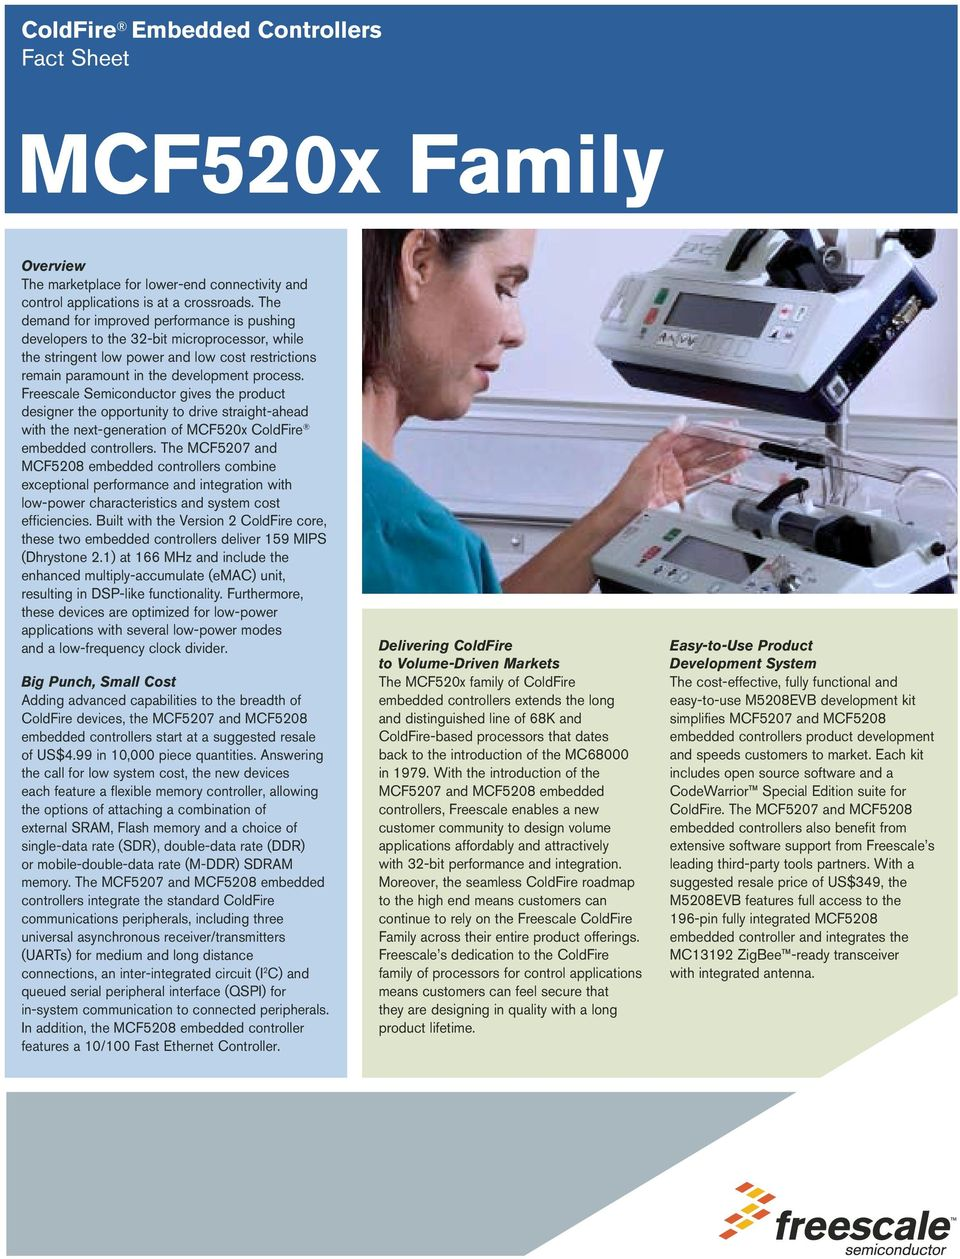 Freescale Semiconductor gives the product designer the opportunity to drive straight-ahead with the next-generation of MCF520x ColdFire embedded controllers.